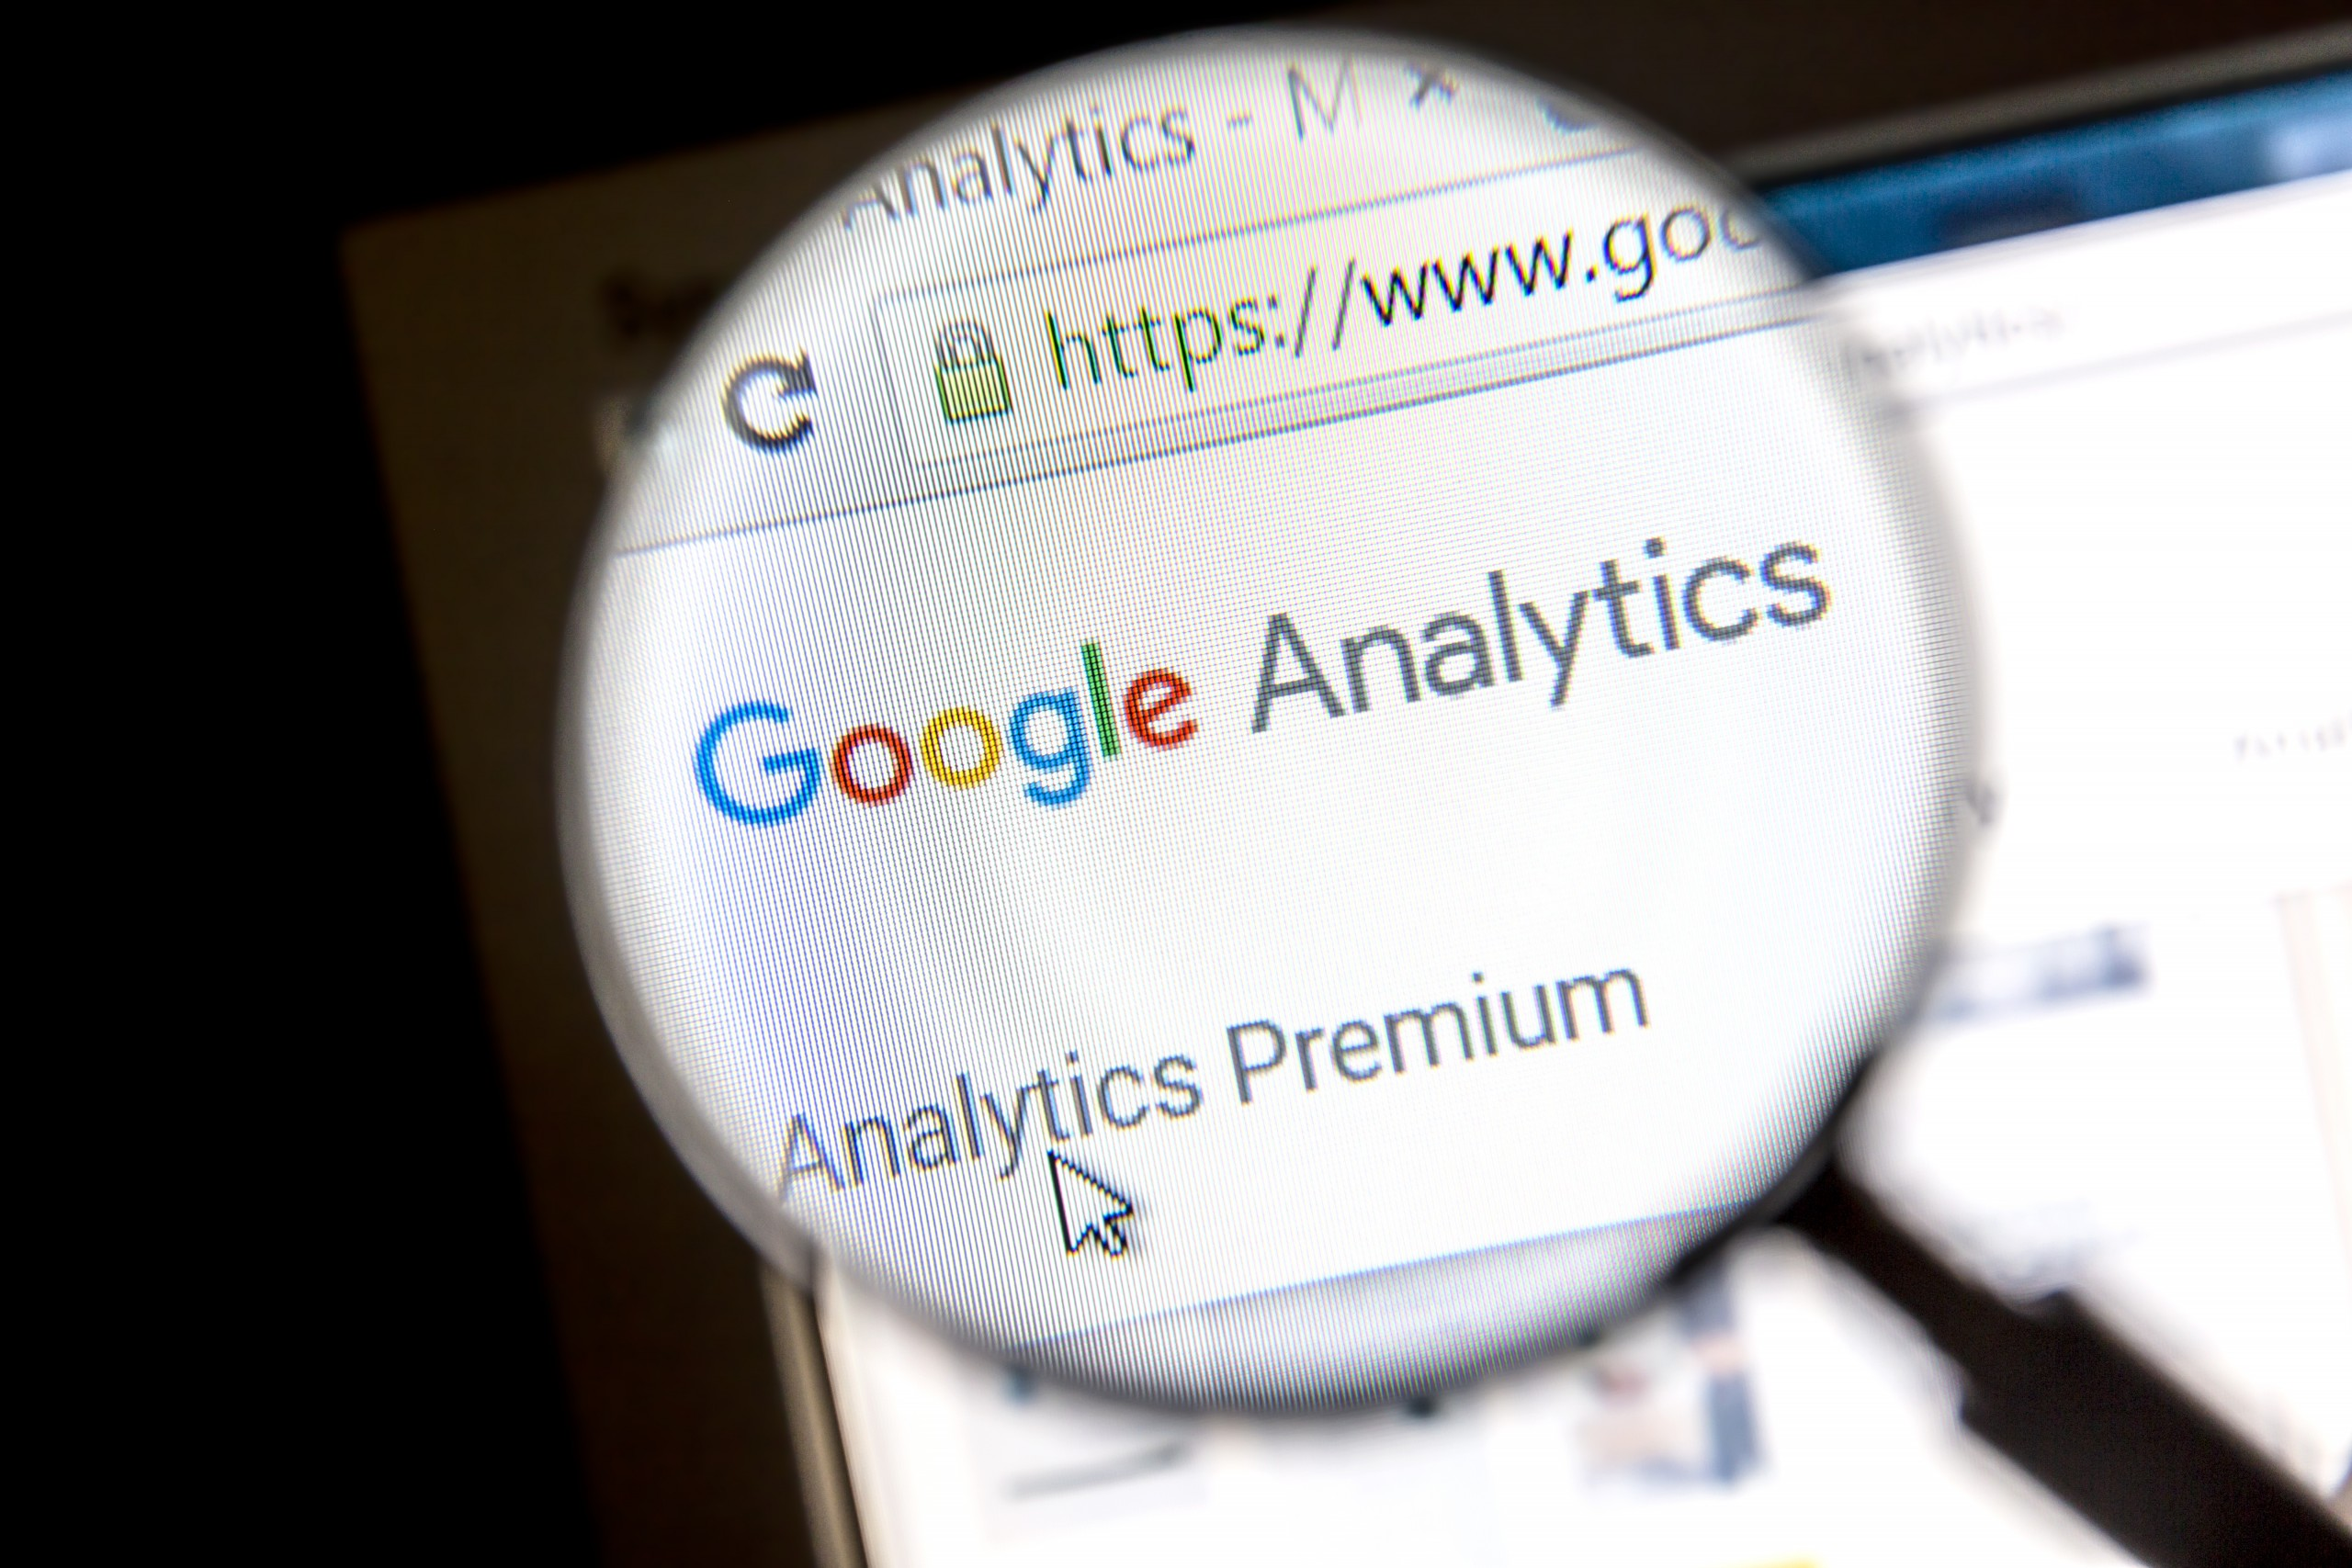 Magnifying glass showing Google Analytics Analytics Premium on computer screen signifying Google Analytics For Small Businesses.